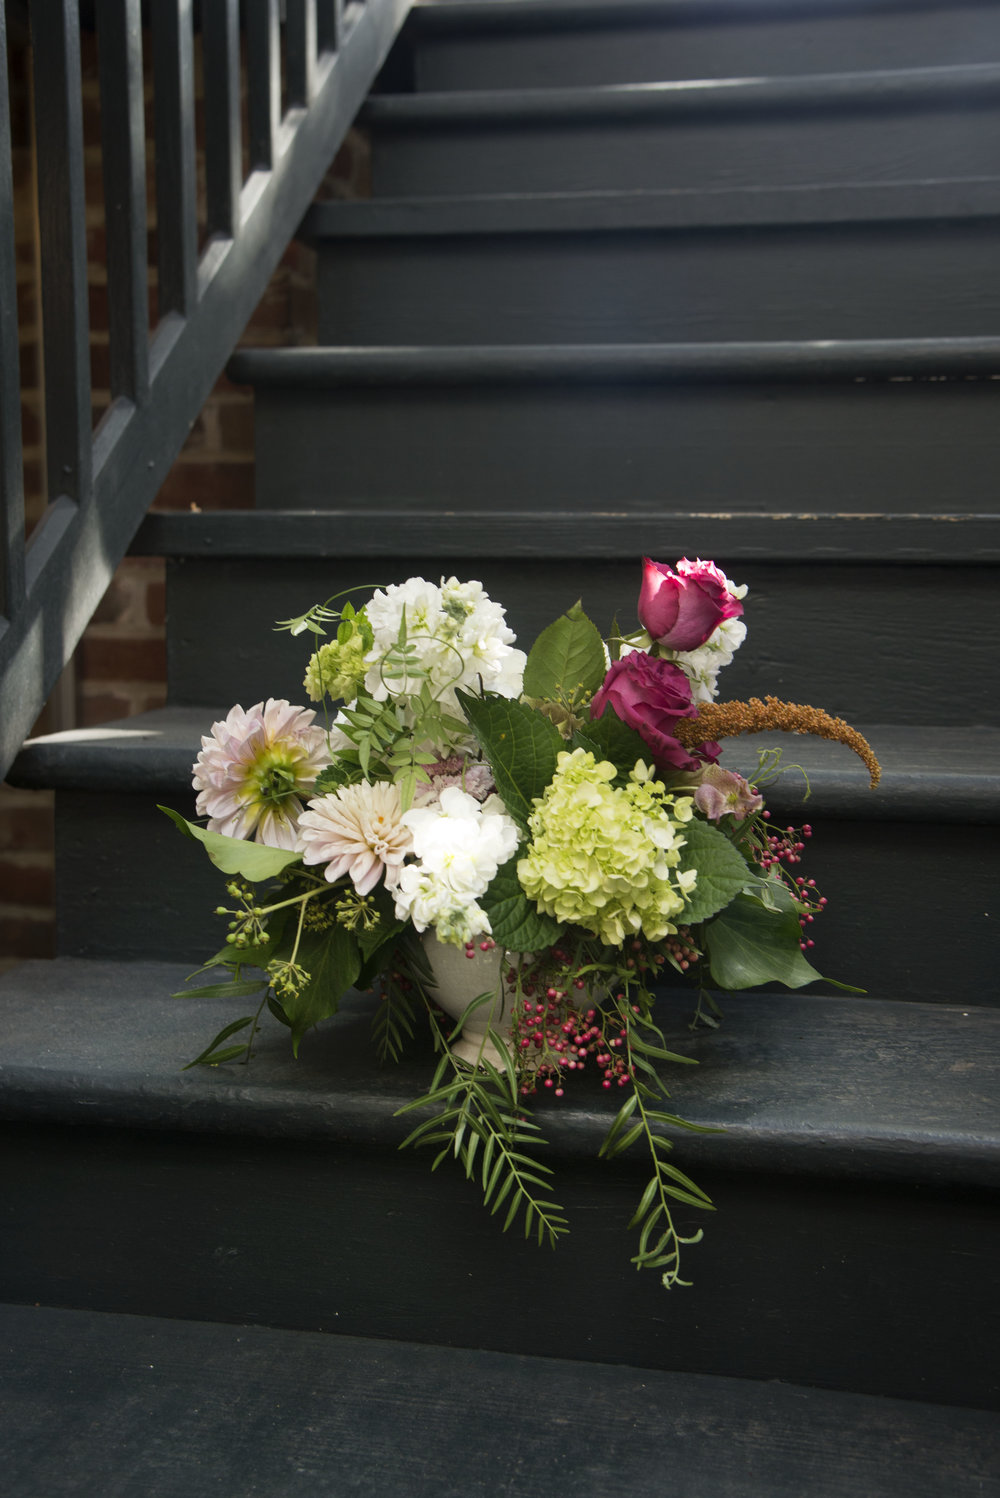 fresh cut organic arrangement on the steps in the sun made by steph mitchs flowers new orleans fresh cut flowers .jpg